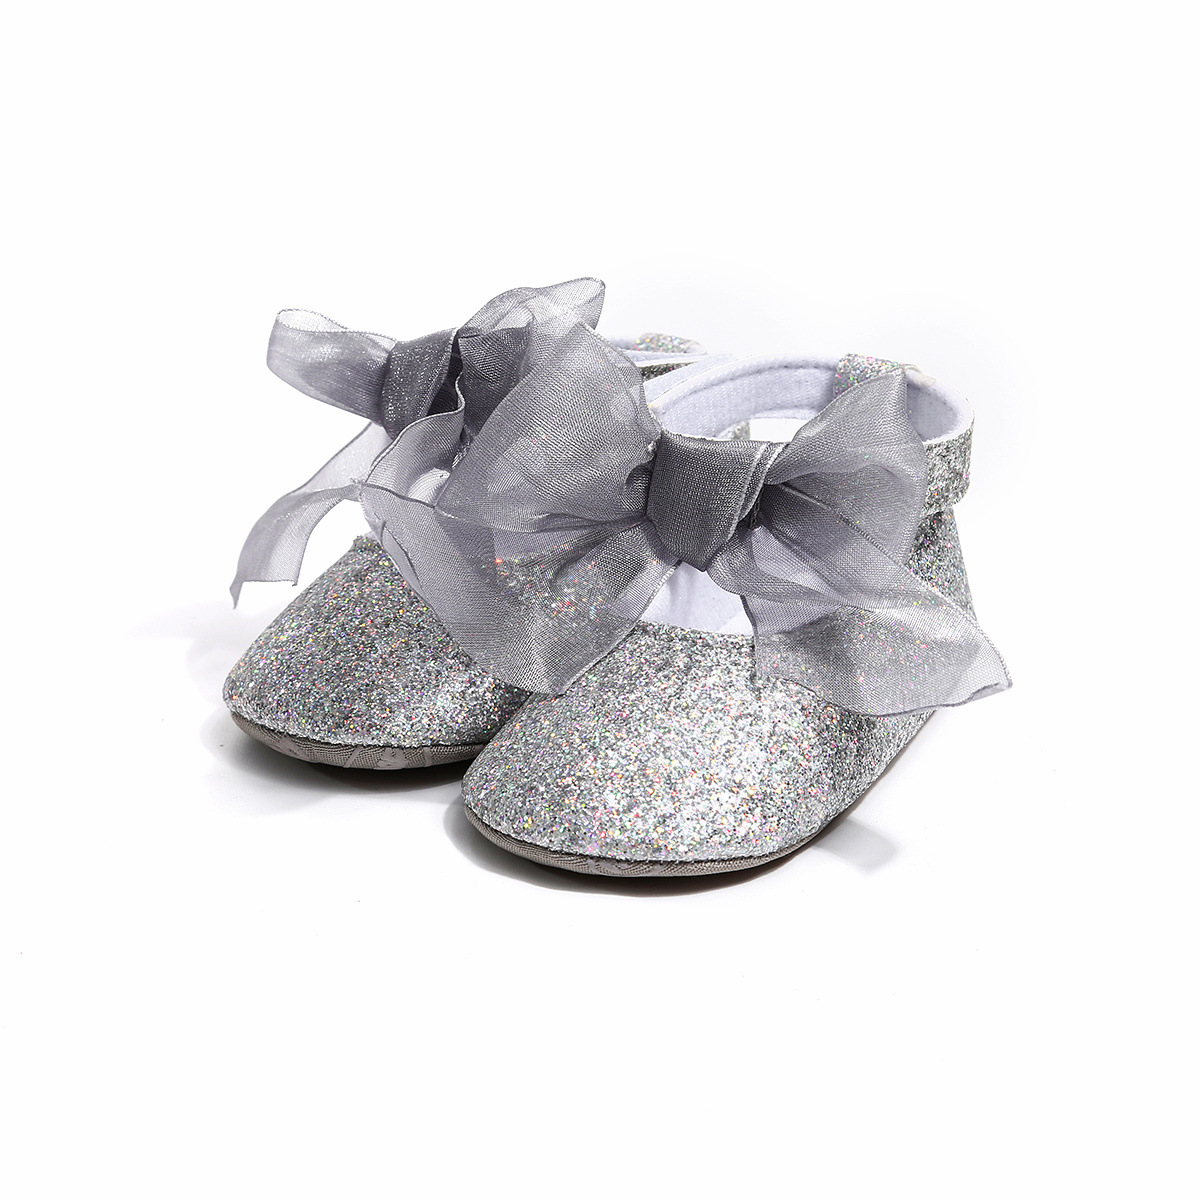 E-FAK Baby Girls Sparkly Mary Jane Flats with Bowknot Non-Slip Soft Rubber Sole Toddler First Walkers Princess Dress Shoes